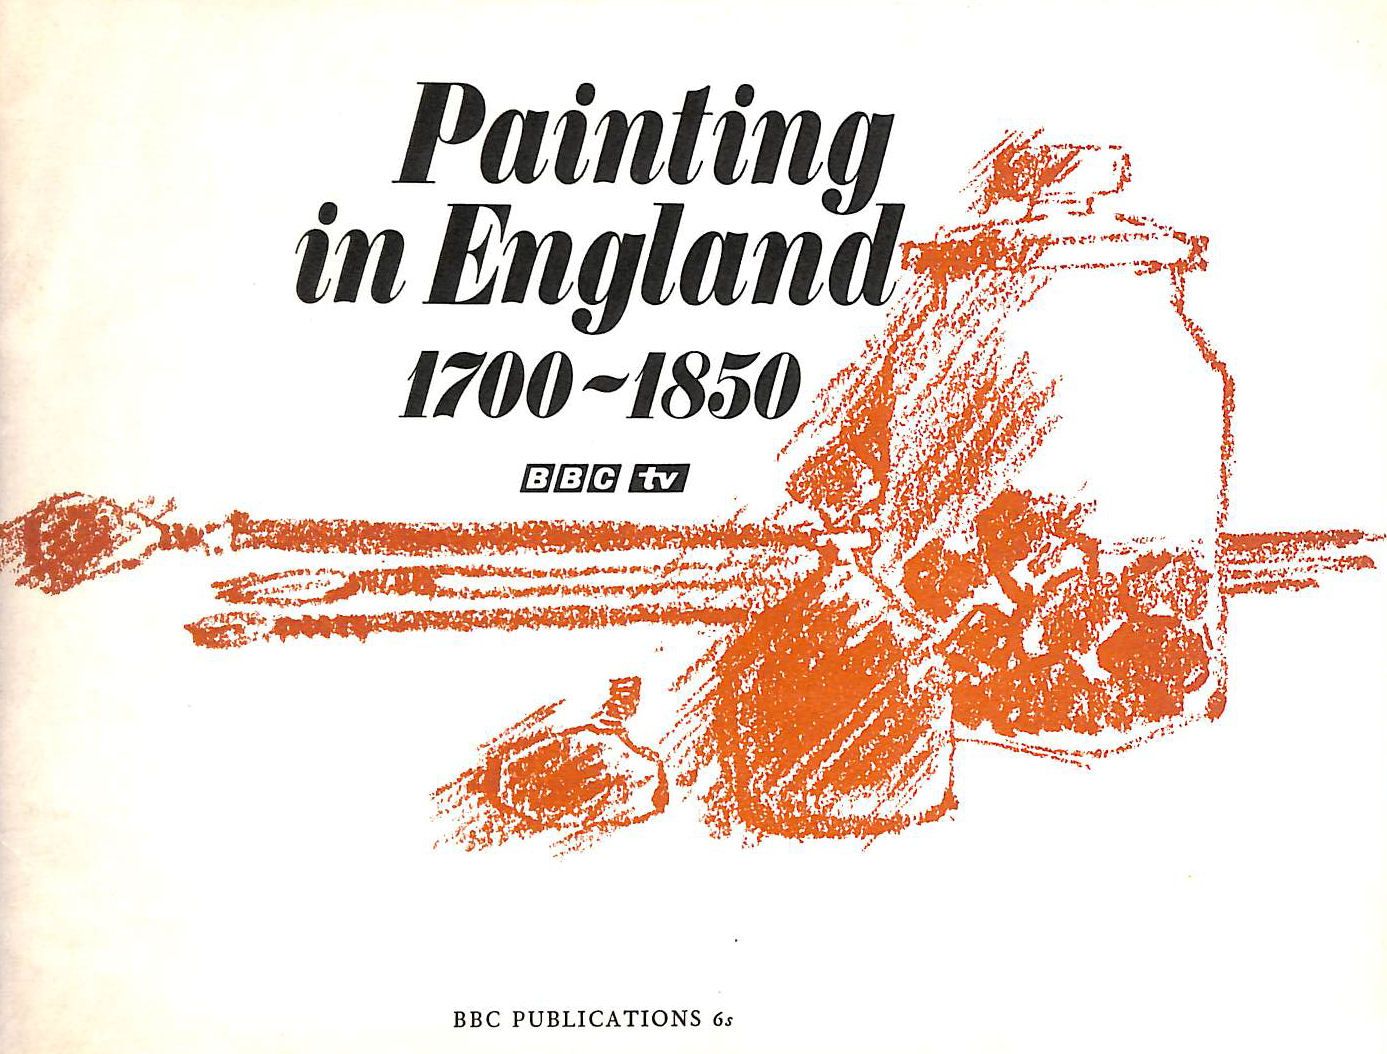 Image for Painting in England 1700-1850